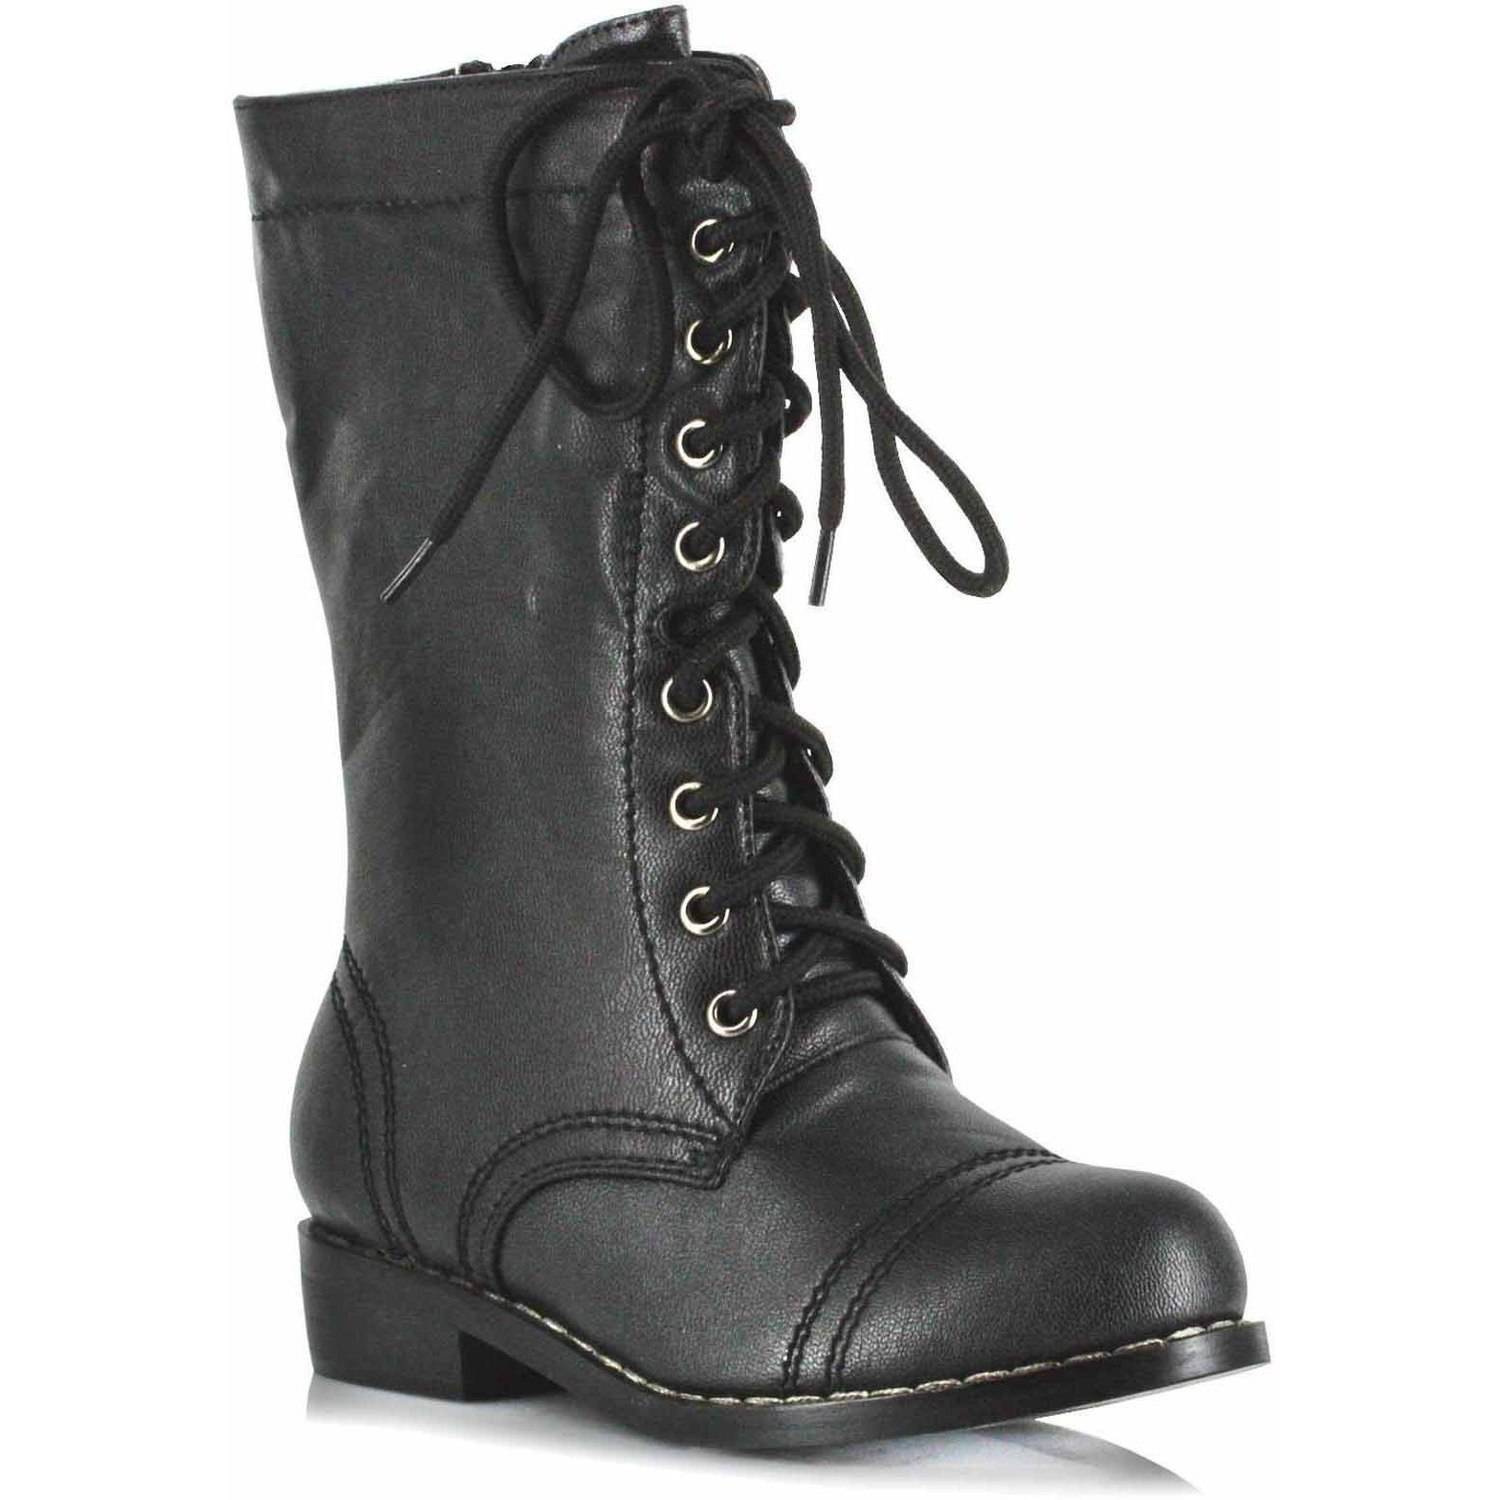 Combat Boots Boys' Child Halloween Costume Accessory - Walmart.com